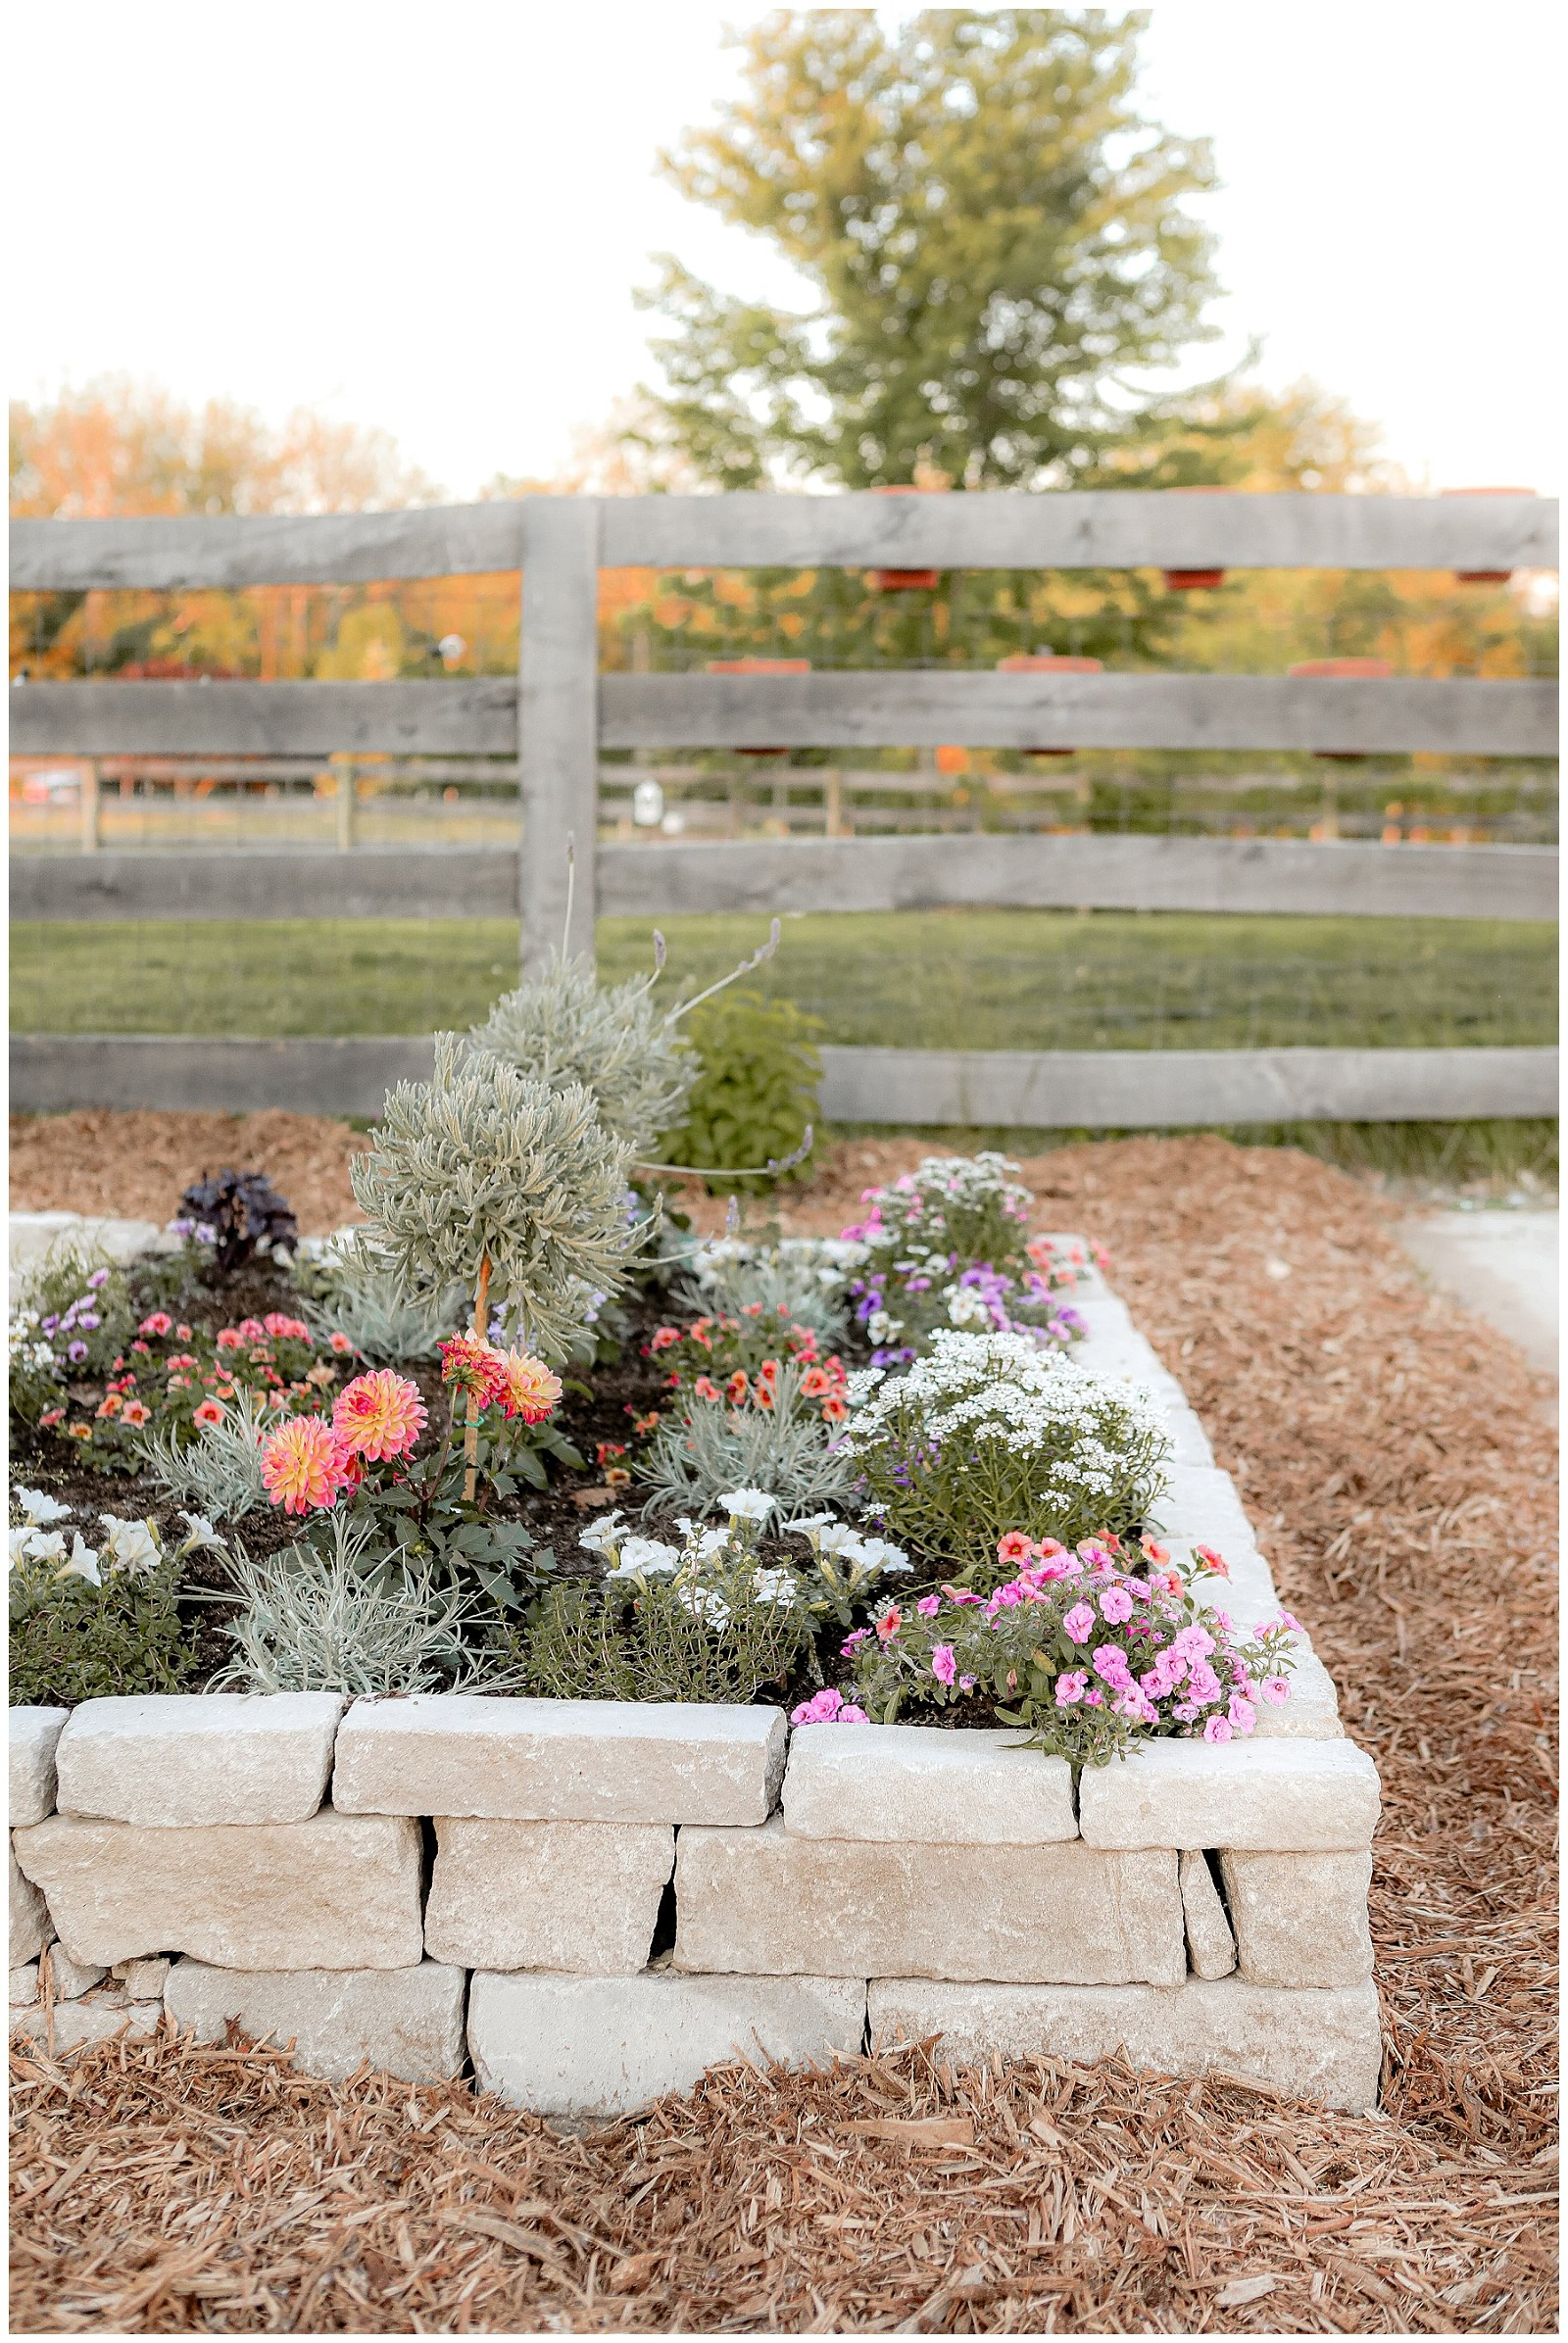 How to build a stone garden bed